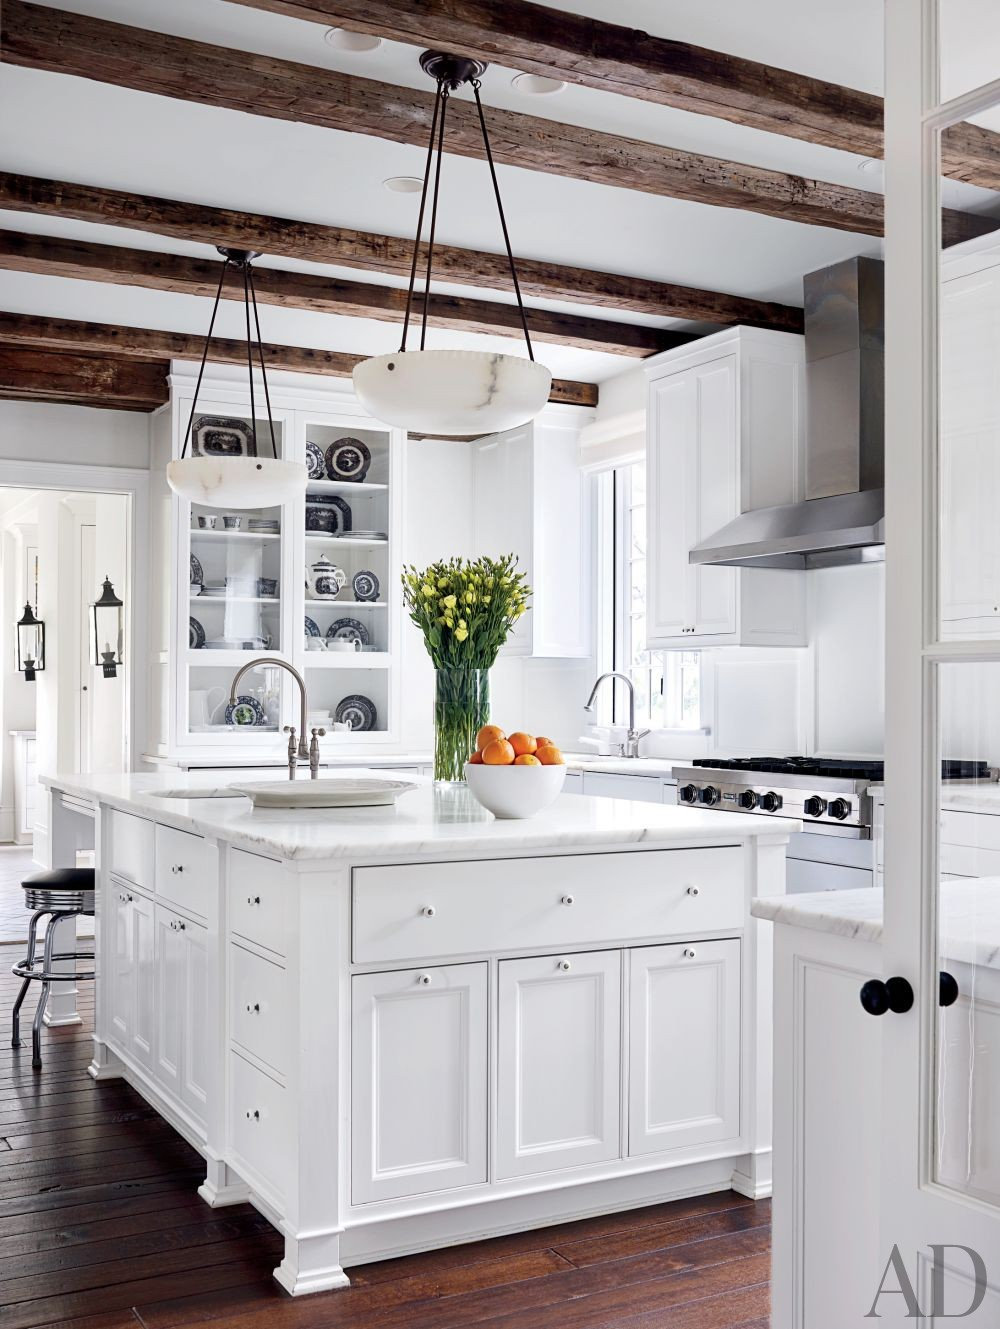 Rustic Kitchen by Darryl Carter Inc. and Donald Lococo Architects in Washington, D.C.